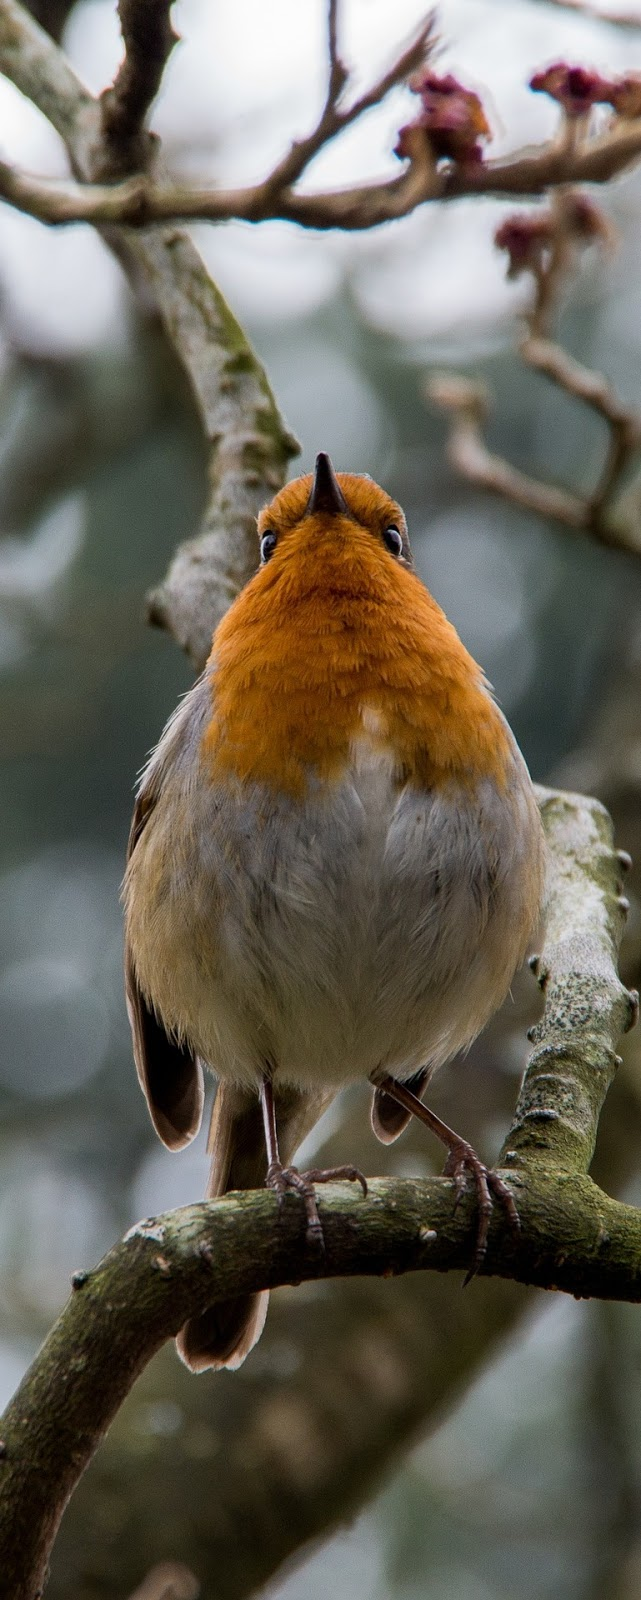 A robin photo shot from below.